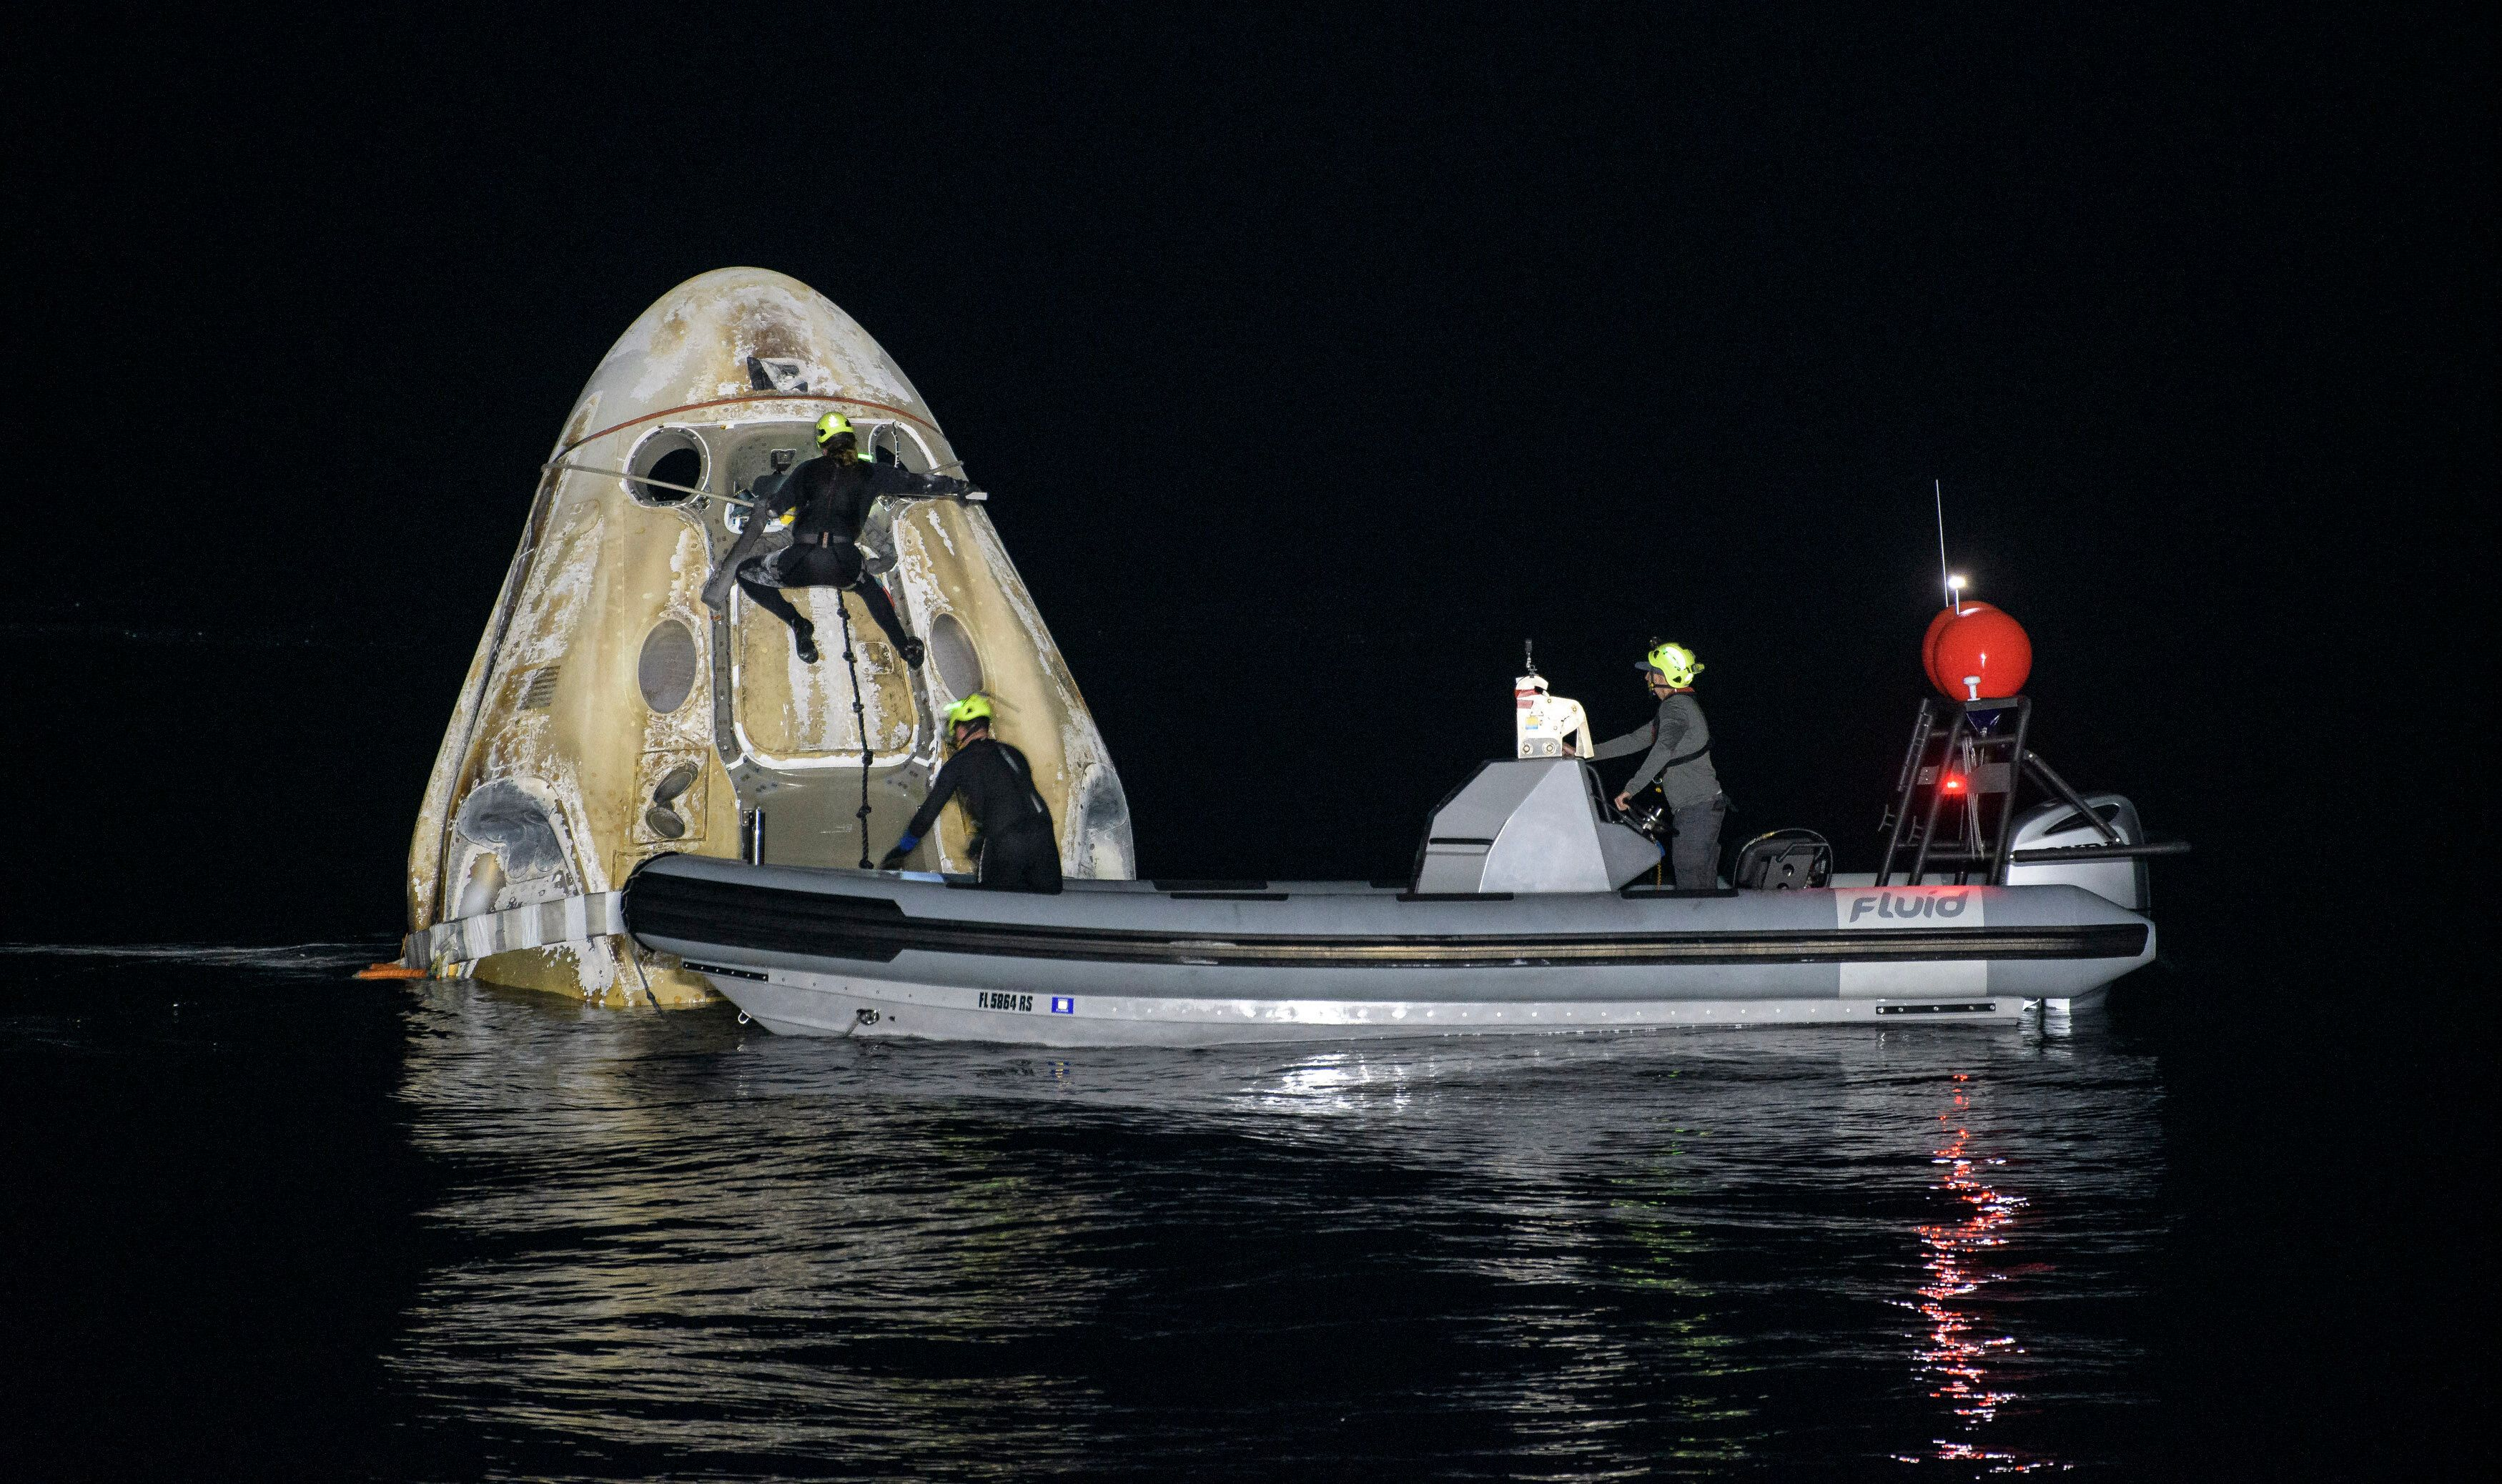 PANAMA CITY, FL. - MAY 02: In this NASA handout, Support teams work around the SpaceX Crew Dragon Resilience spacecraft short